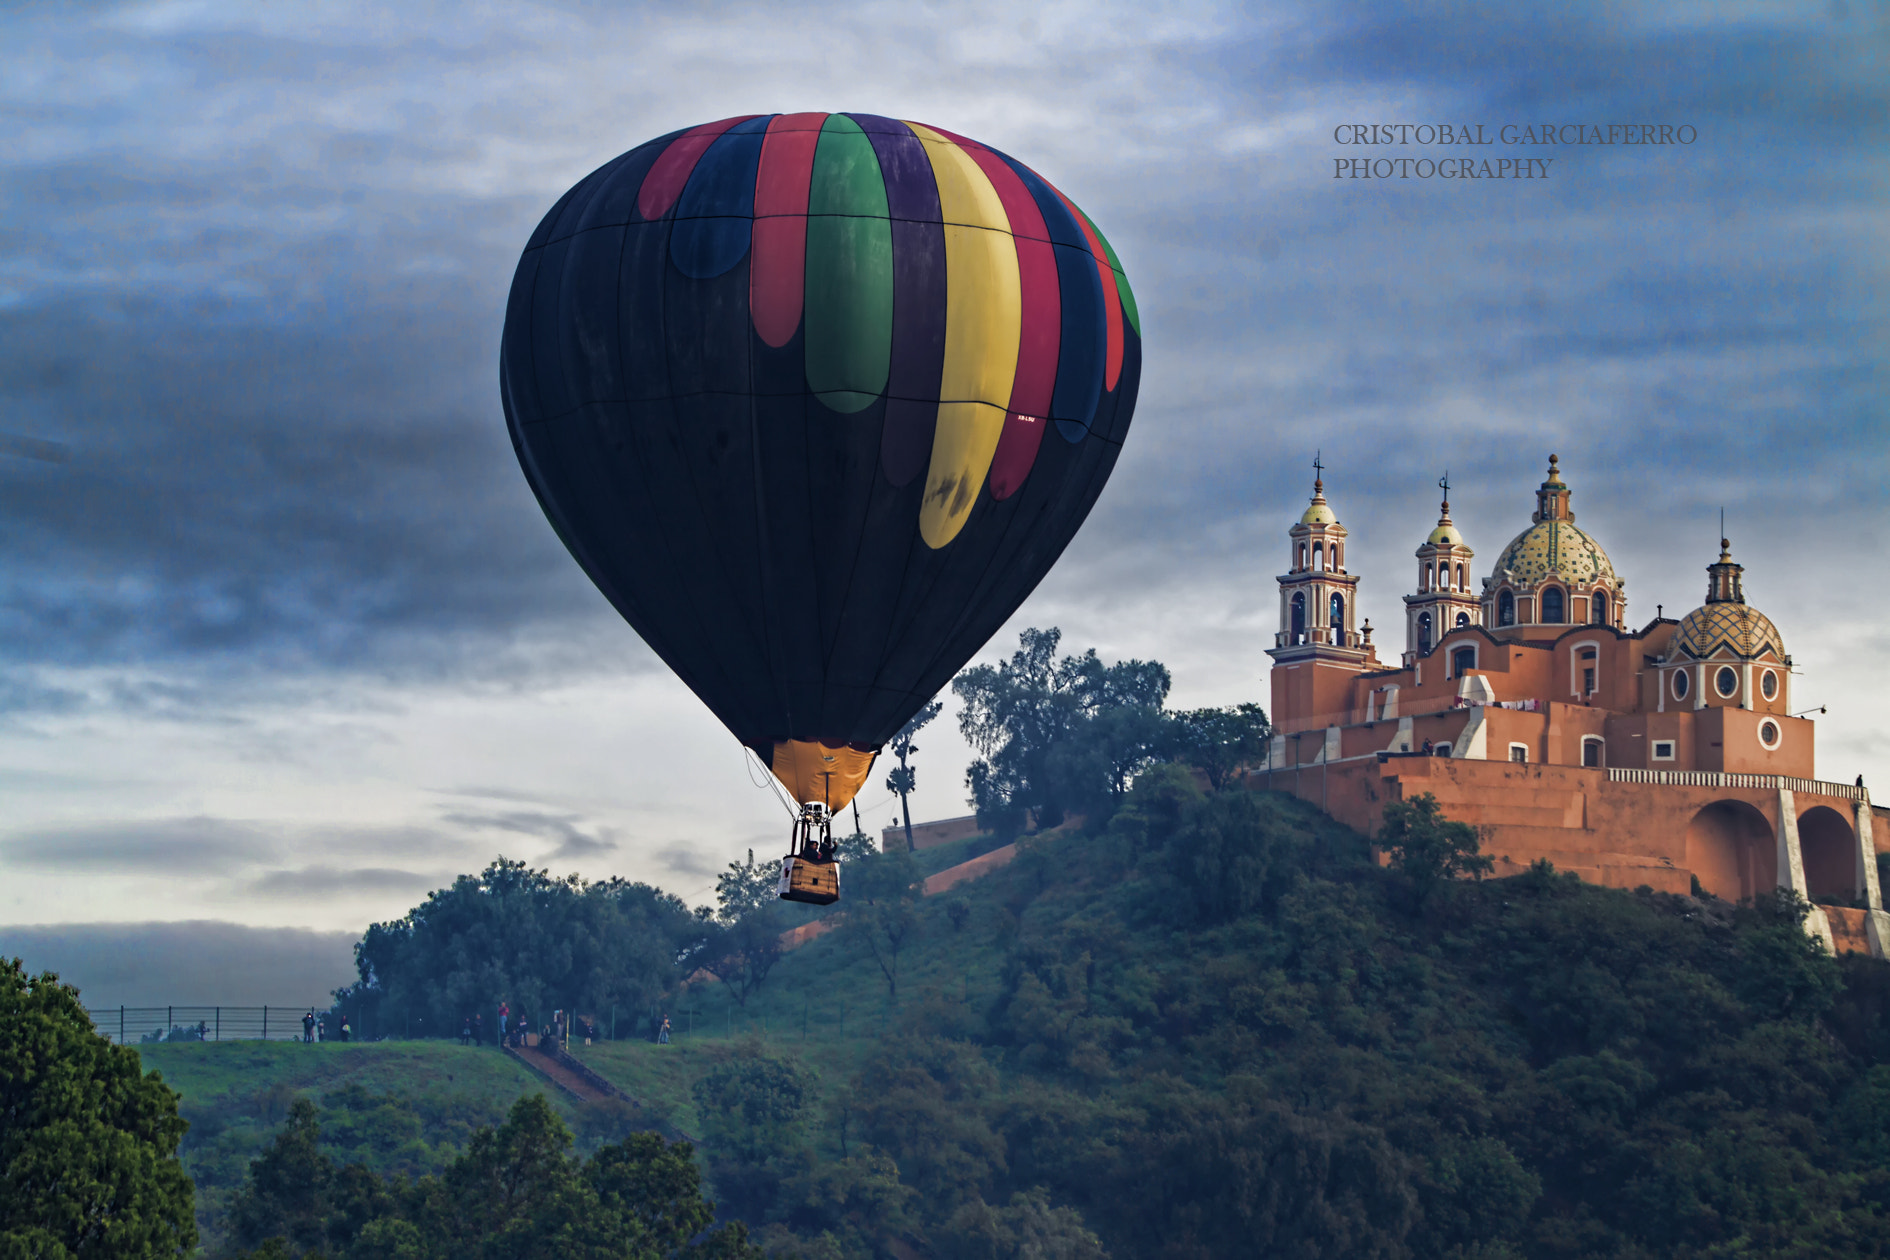 Photograph Church and Balloon by Cristobal Garciaferro Rubio on 500px